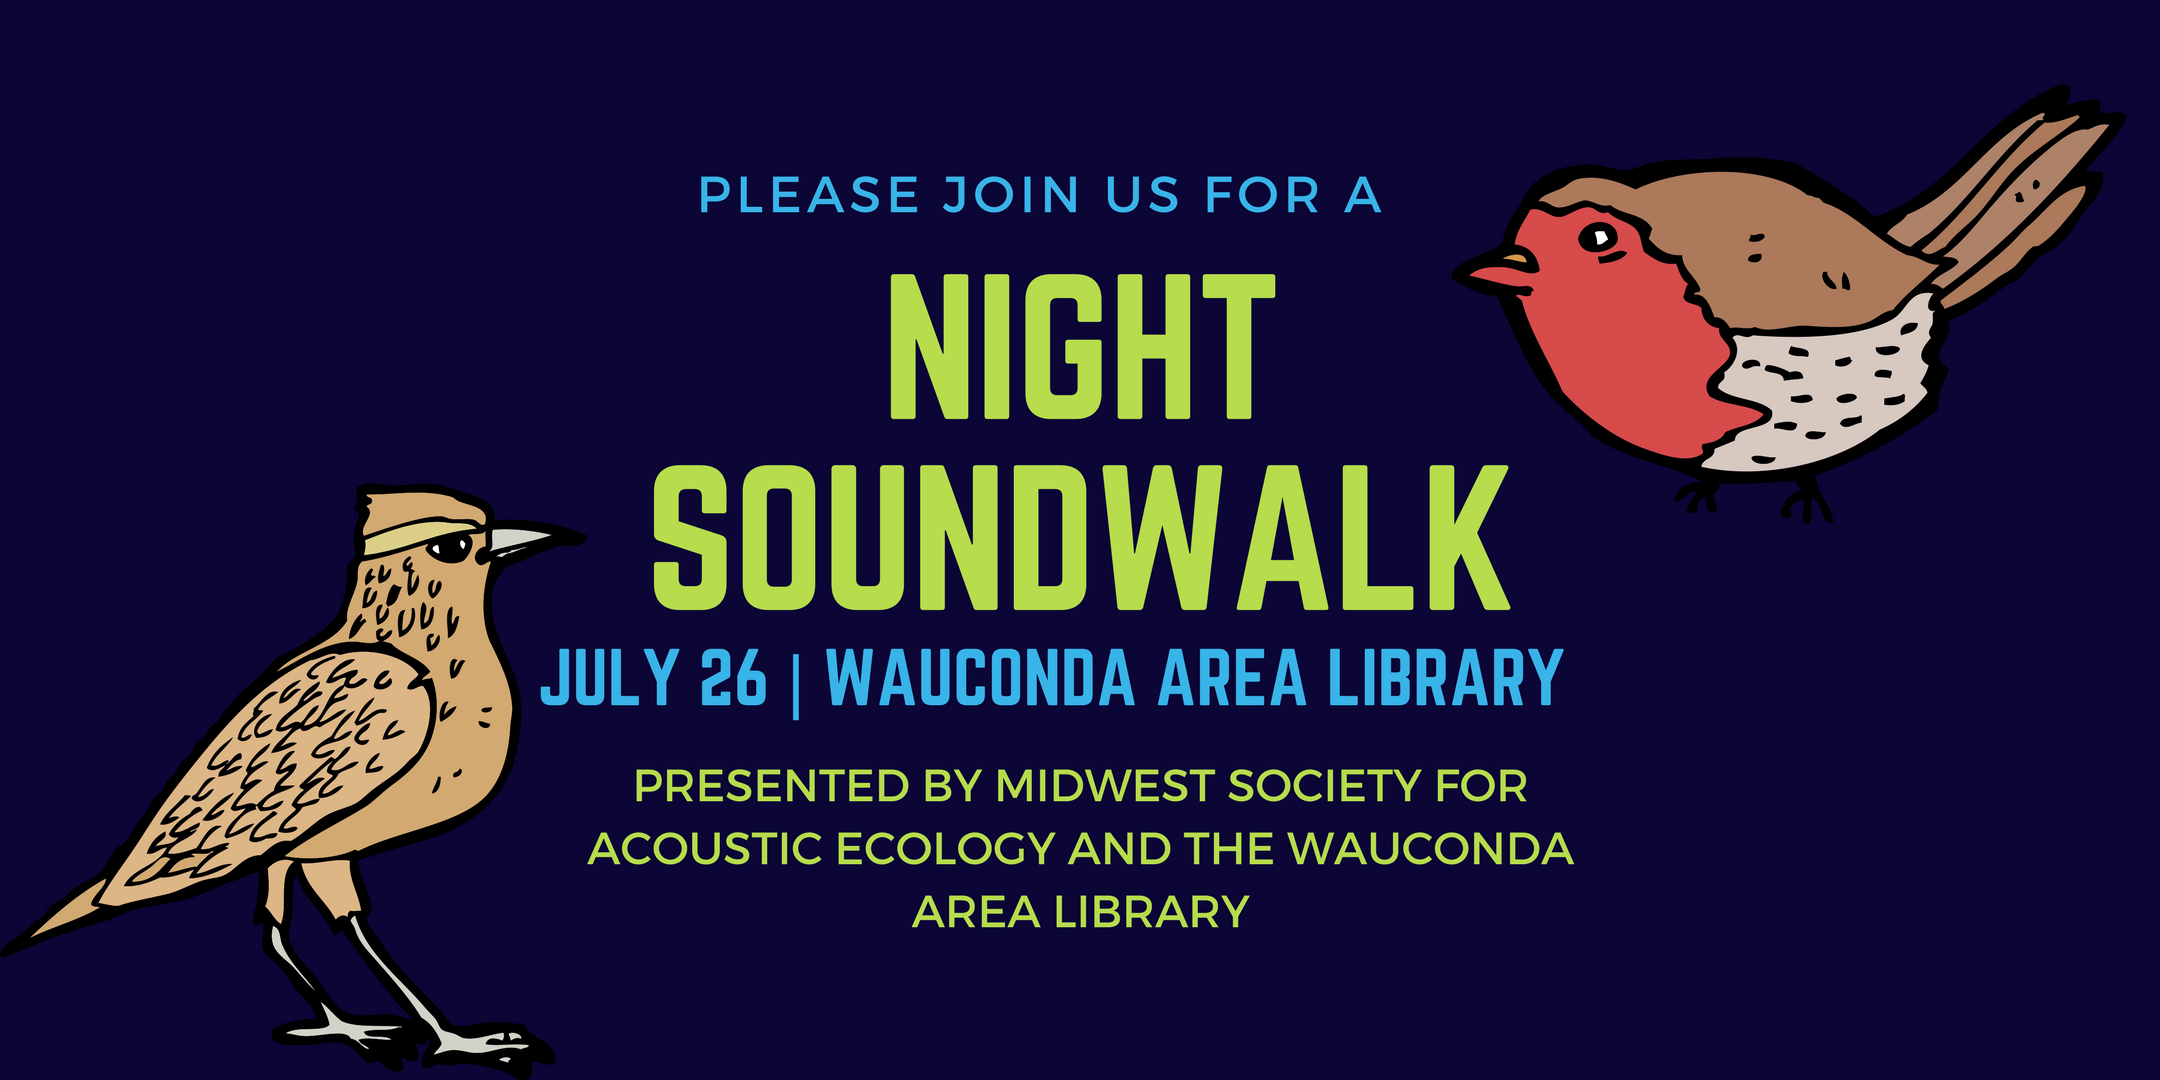 Night Soundwalk at Wauconda Area Library – Wed., July 26